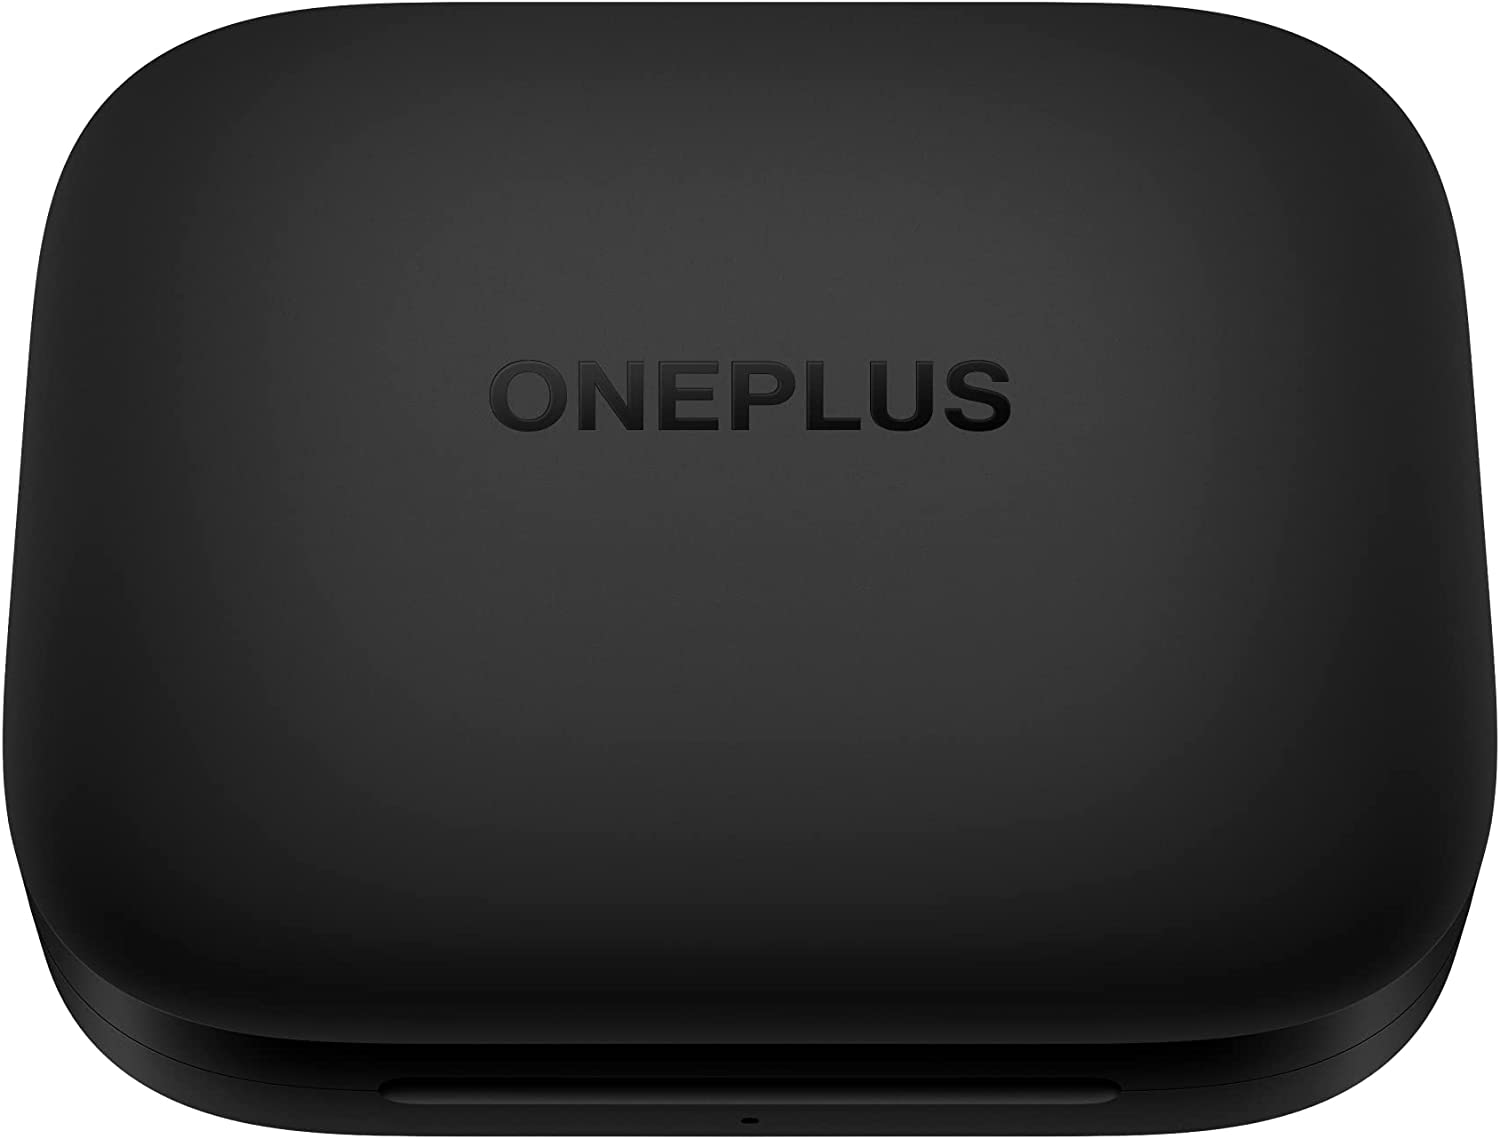 OnePlus Buds Pro - Wireless headphones with up to 38 Hours of battery life and Smart Adaptive Noise Cancellation - Matte Black